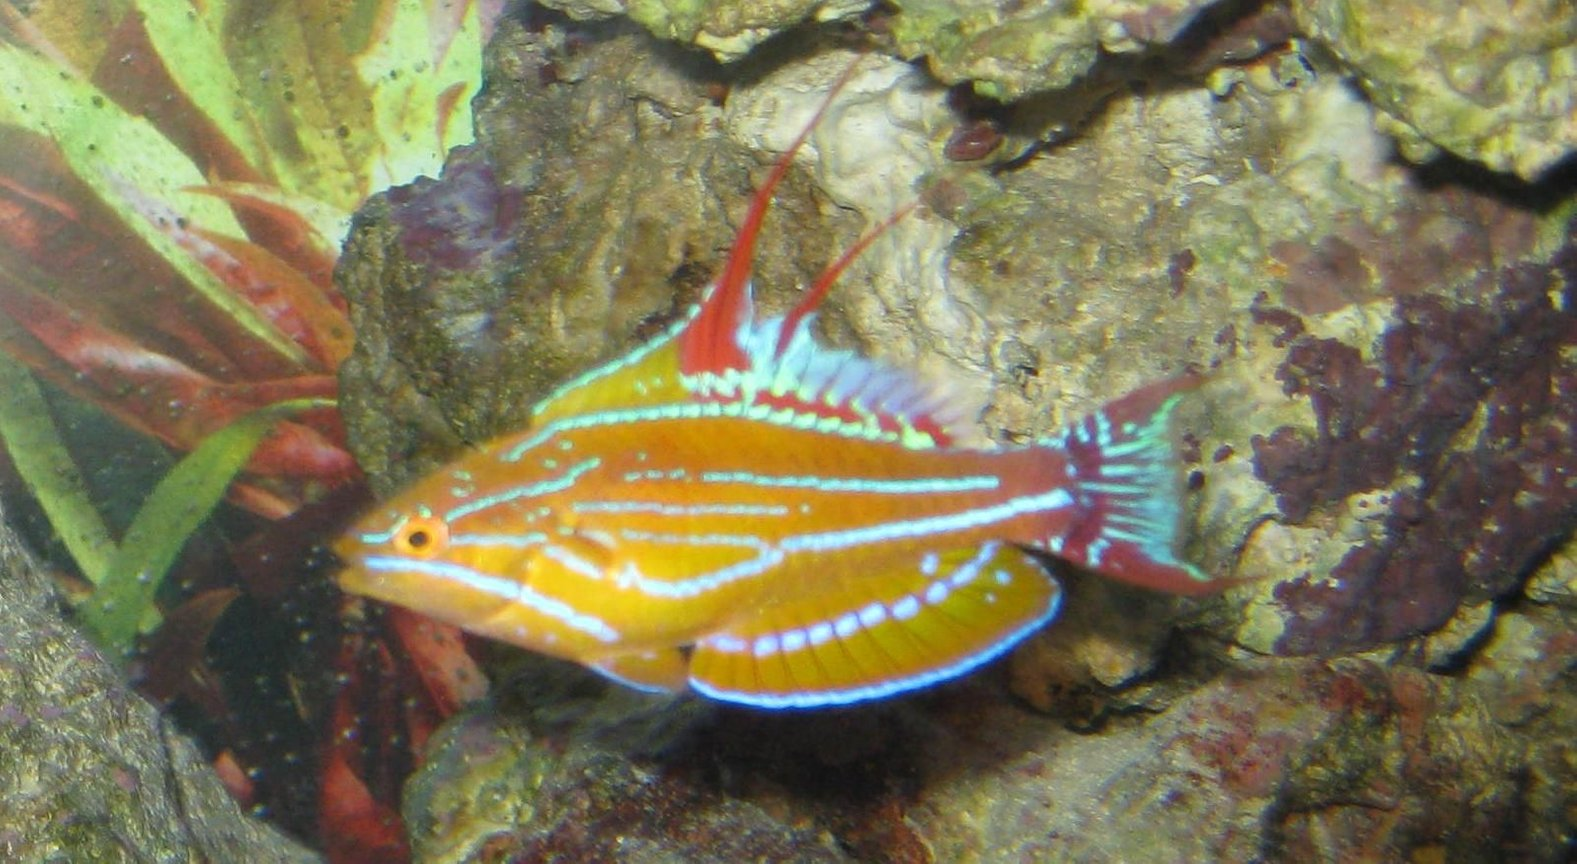 saltwater fish - paracheilinus mccoskeri - mccosker's flasher wrasse stocking in 125 gallons tank - Hybrid flasher wrasse doing his thing